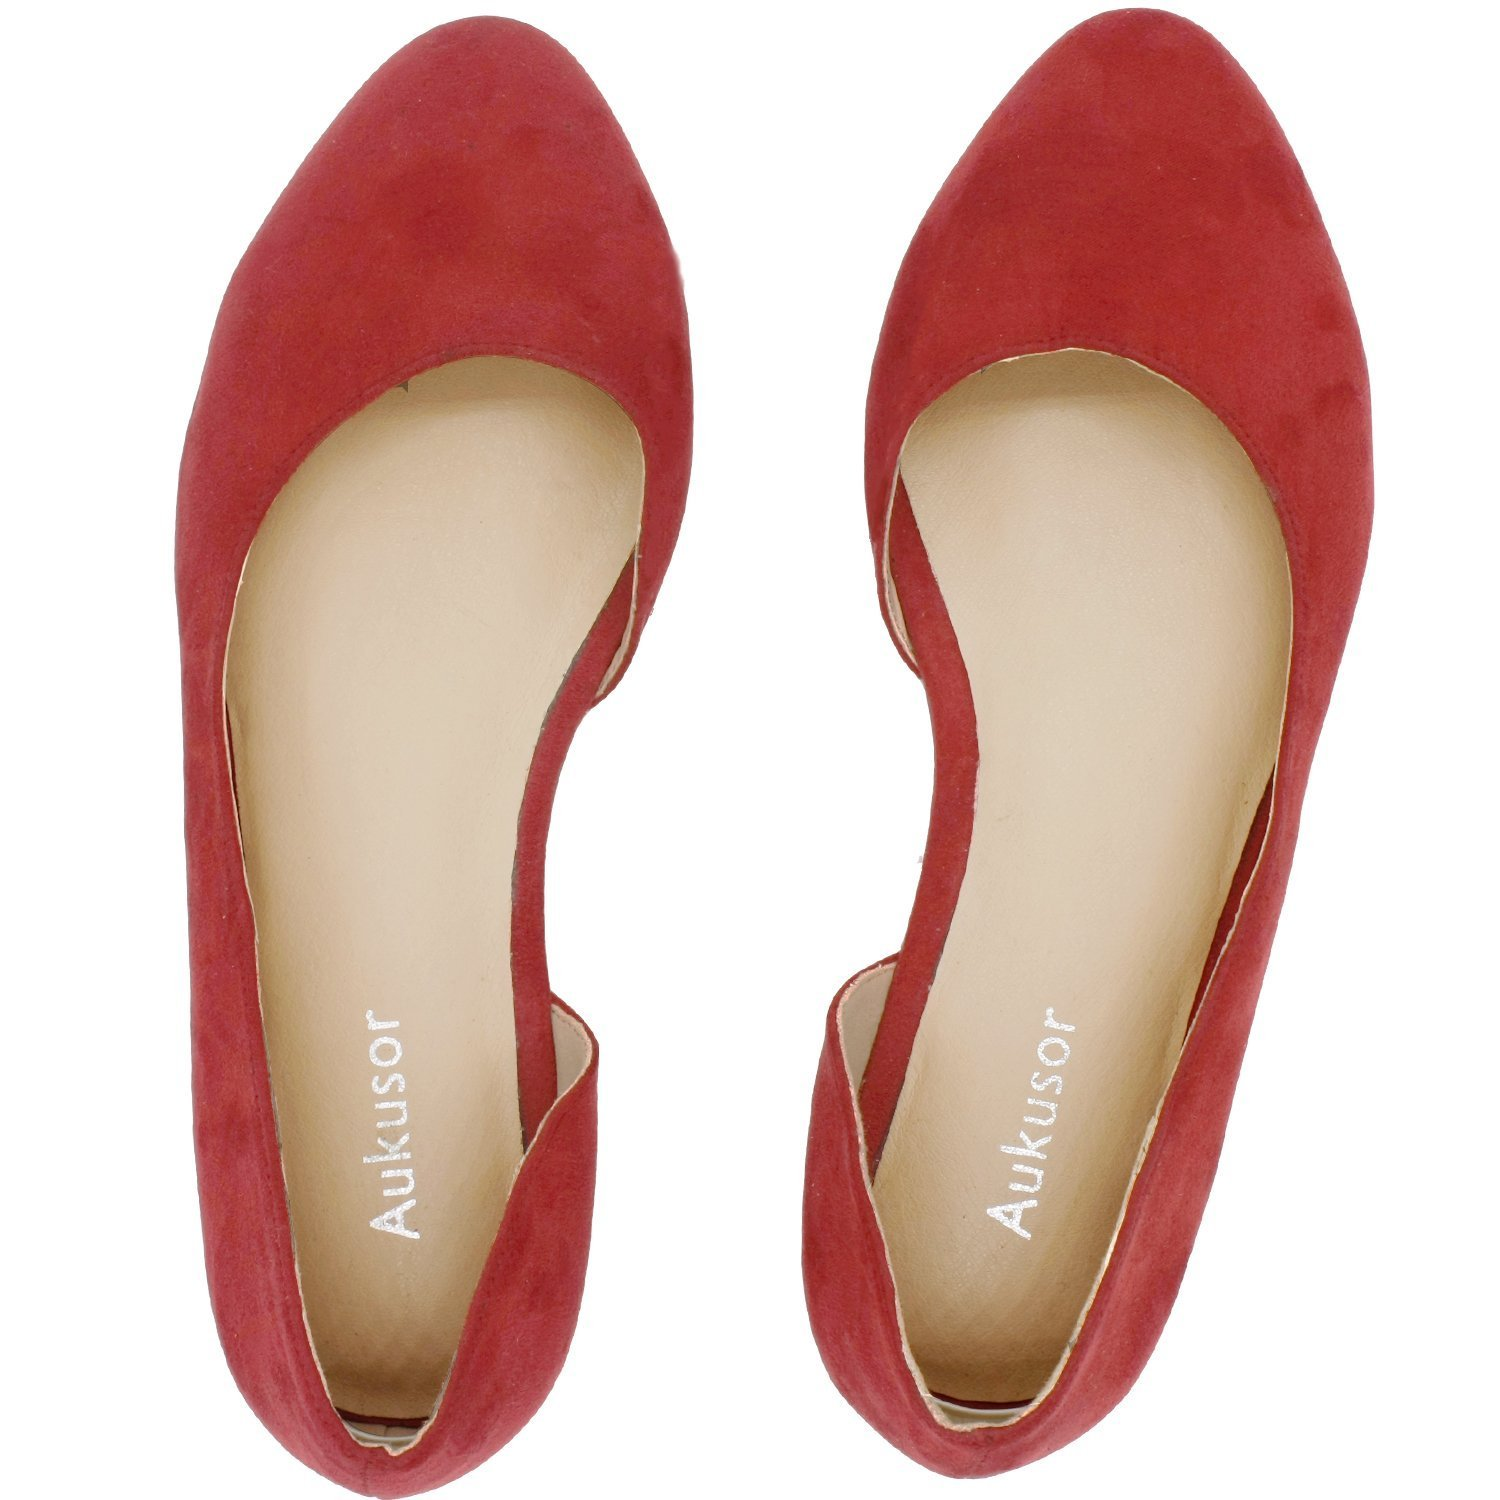 Aukusor Women's Wide Width Ballet Flat - Comfortable Slip On Closed Toe Casual Shoes.(Red 180401, 7.5WW)